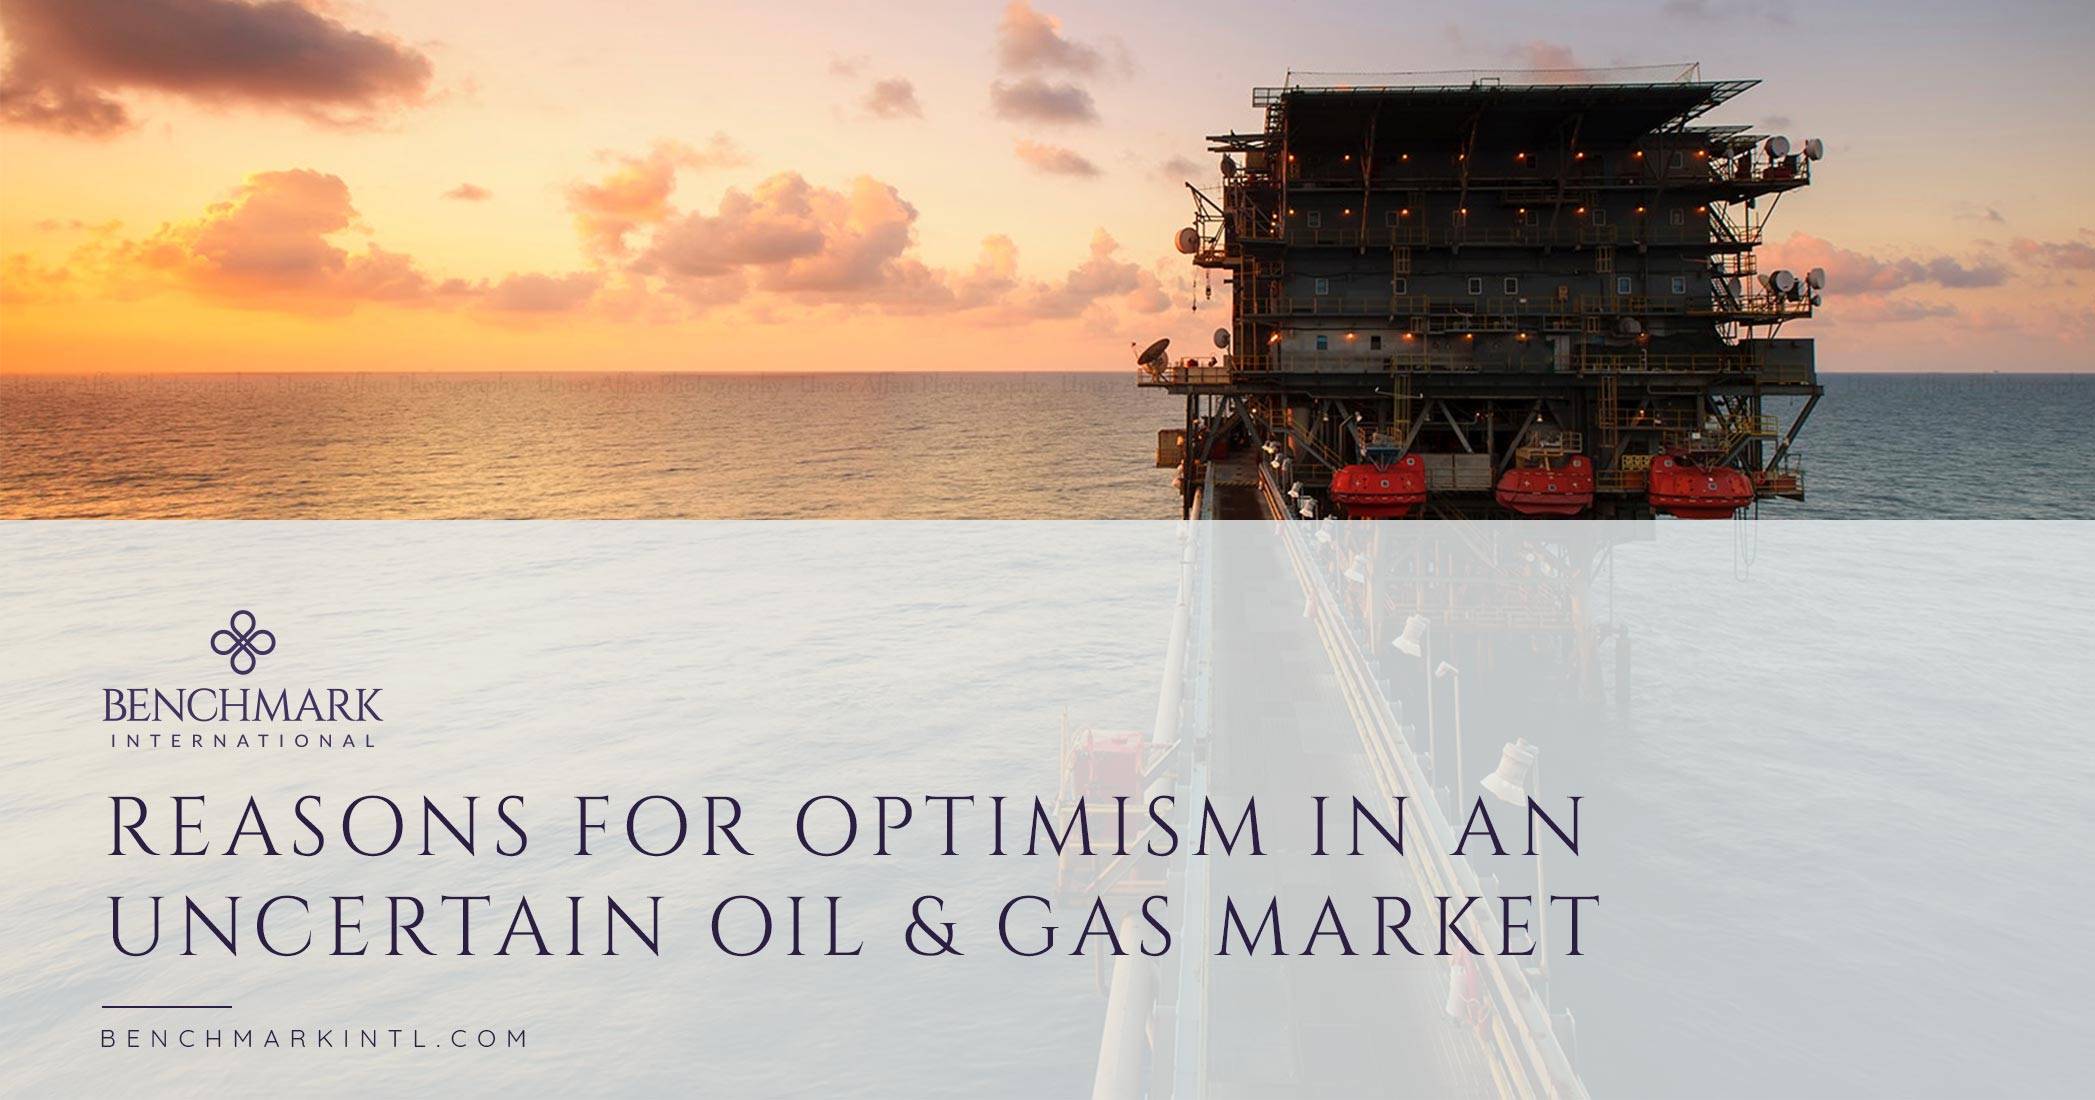 Reasons For Optimism In An Uncertain Oil & Gas Market